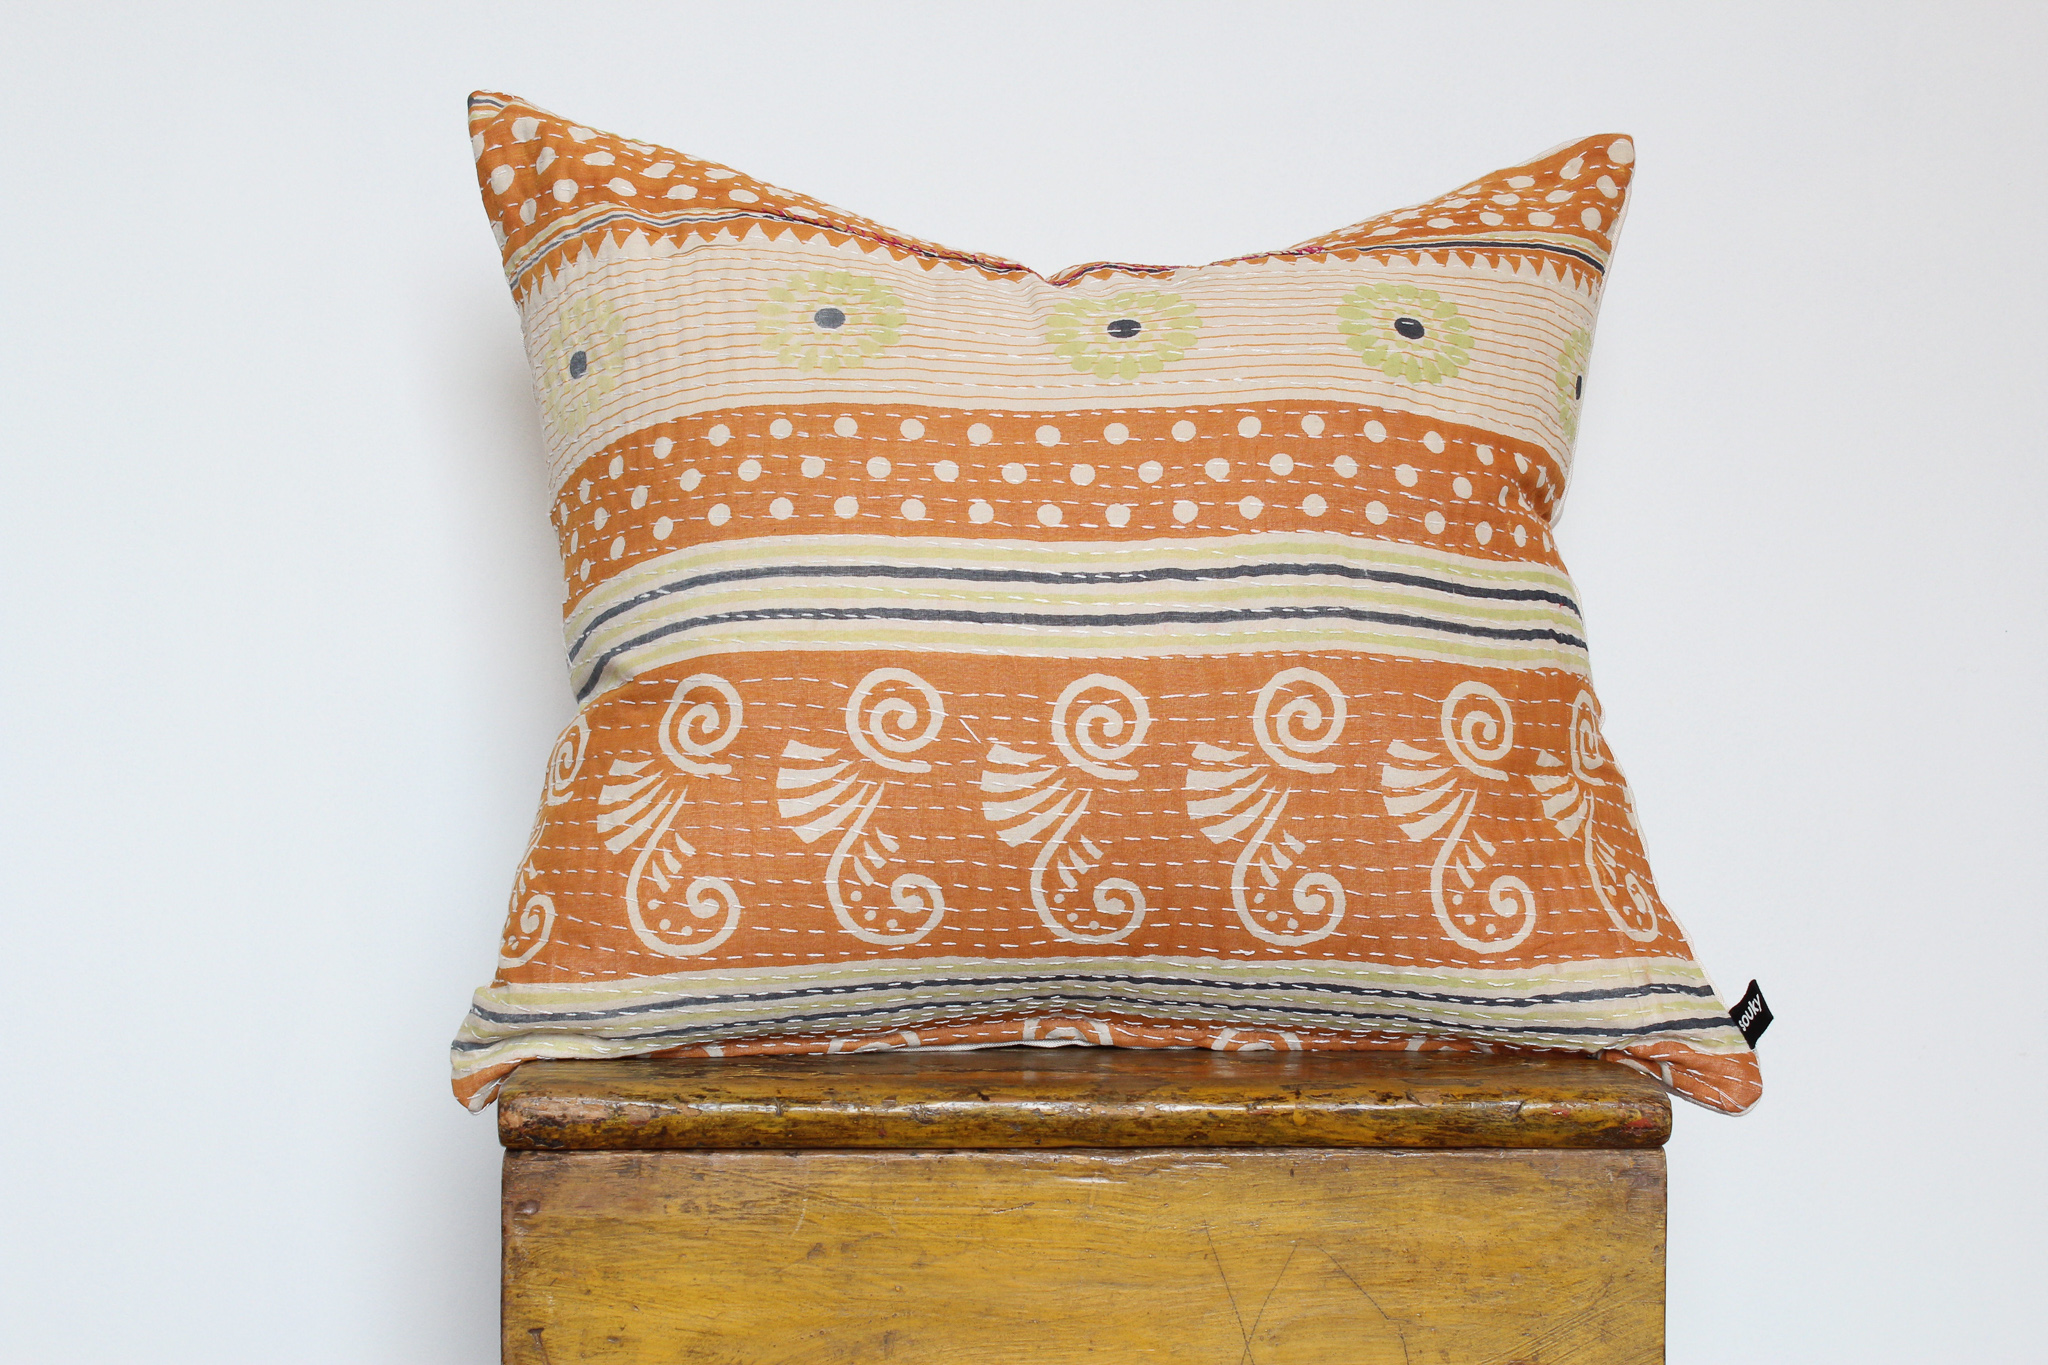 Callie- No. 201   300 RMB  Pillow cover is made from worn sari fabric sourced from India  Size: Roughly 51x45 cm  Pillow back is made from a neutral cotton/linen blend  Brass zipper on bottom of pillow  Down insert included  Hand wash and spot treat